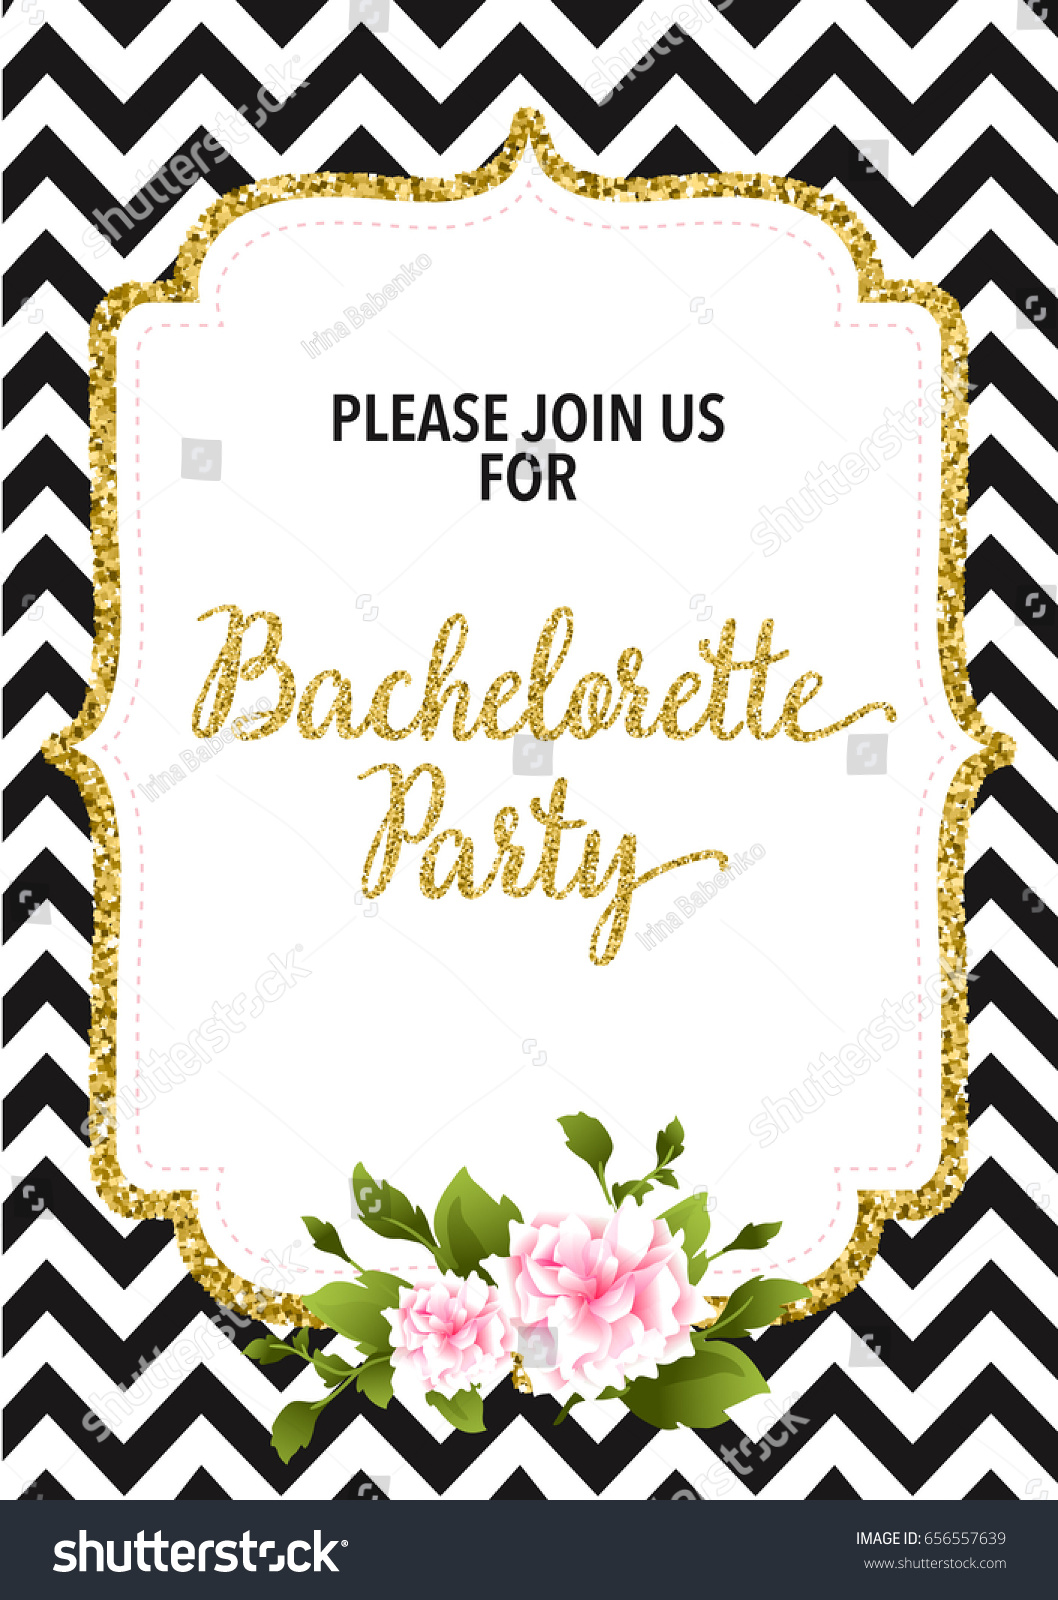 Free Bachelorette Party Invitations Choice Image - Party ...